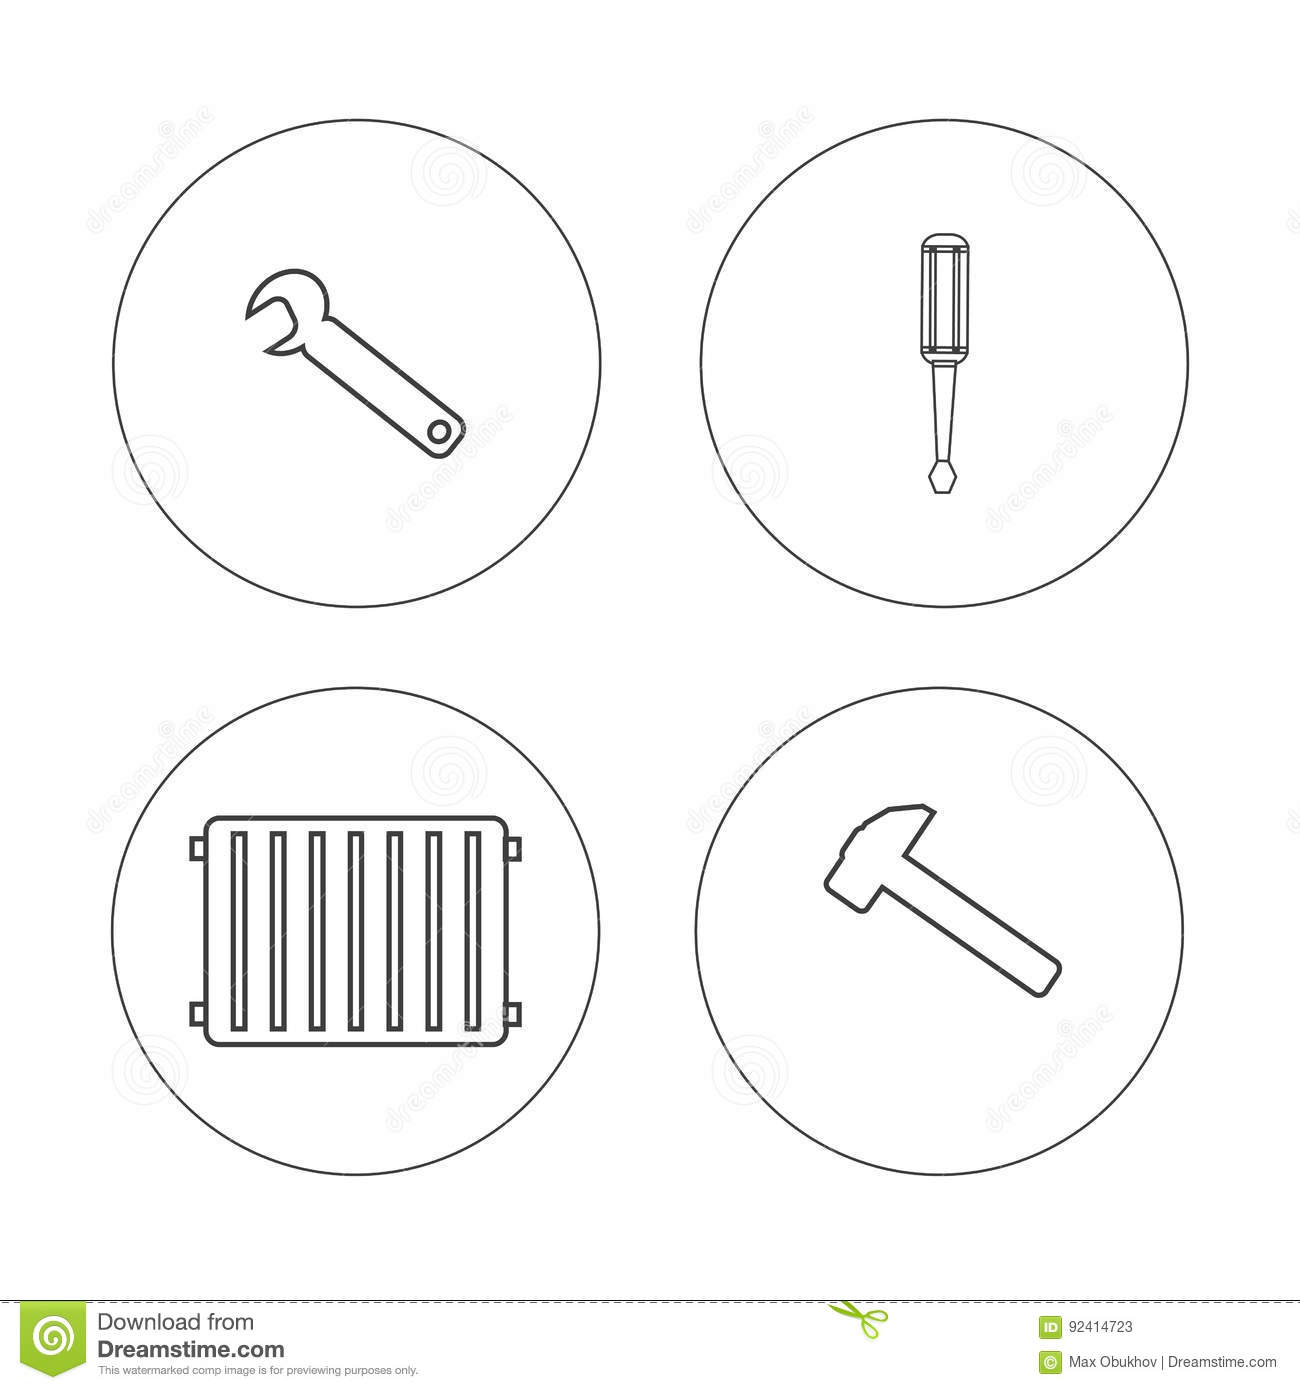 Stock Illustration Hvac Heating Repair Tools Logo Set Elemets Elemets Hummer Wrench Screwdriver Circle White Background Tankless Image92414723 further Water Heater Parts Diagram additionally Electric Water Heater Piping Diagram moreover Wiring Diagram For Rheem Hot Water Heater moreover Base Board Heaters 415207. on tankless water heater